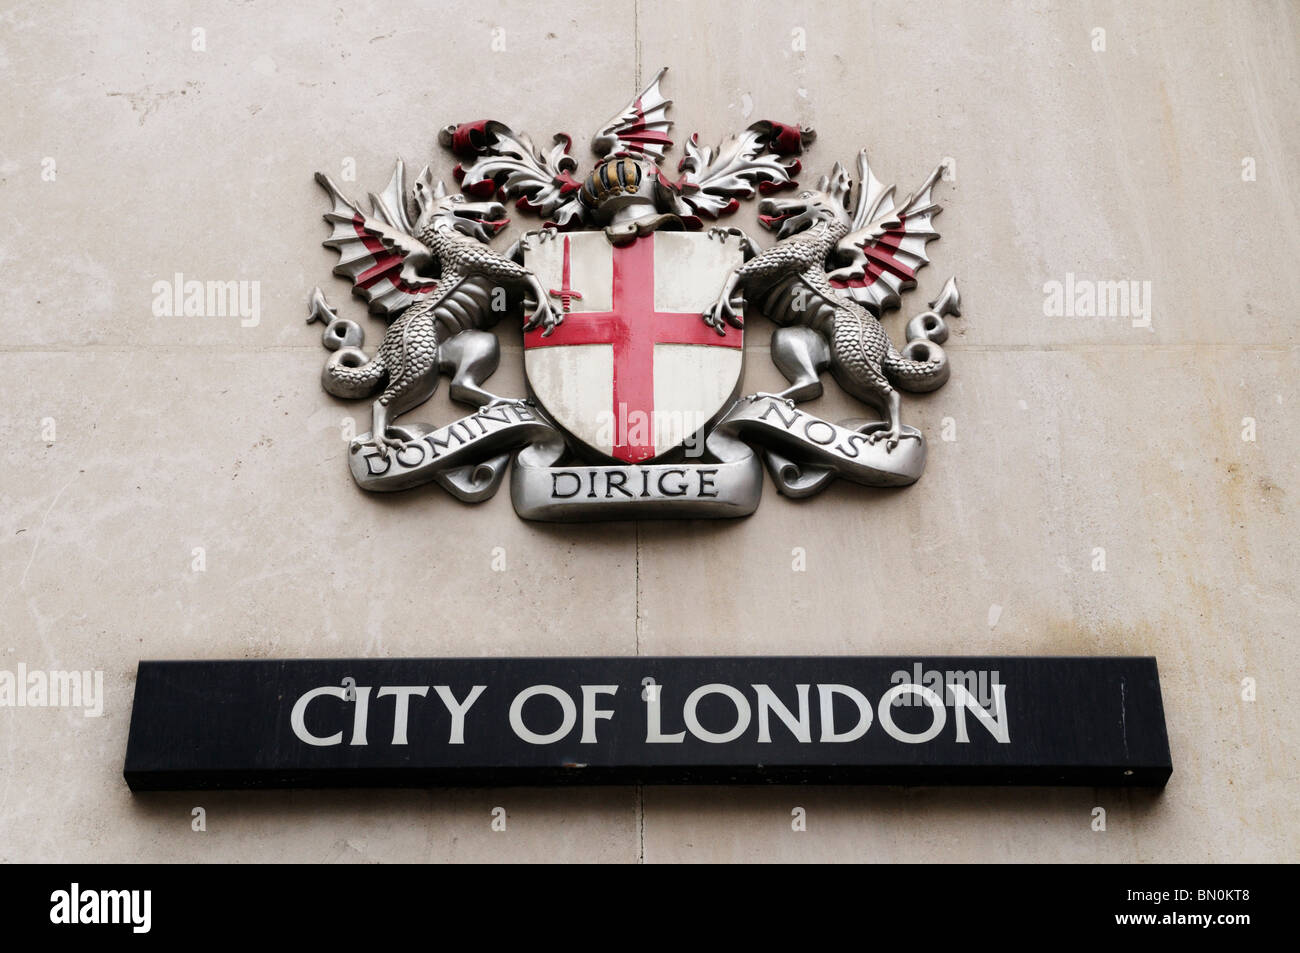 Domine  Dirige Nos city of London Coat of Arms, London, England, UK - Stock Image